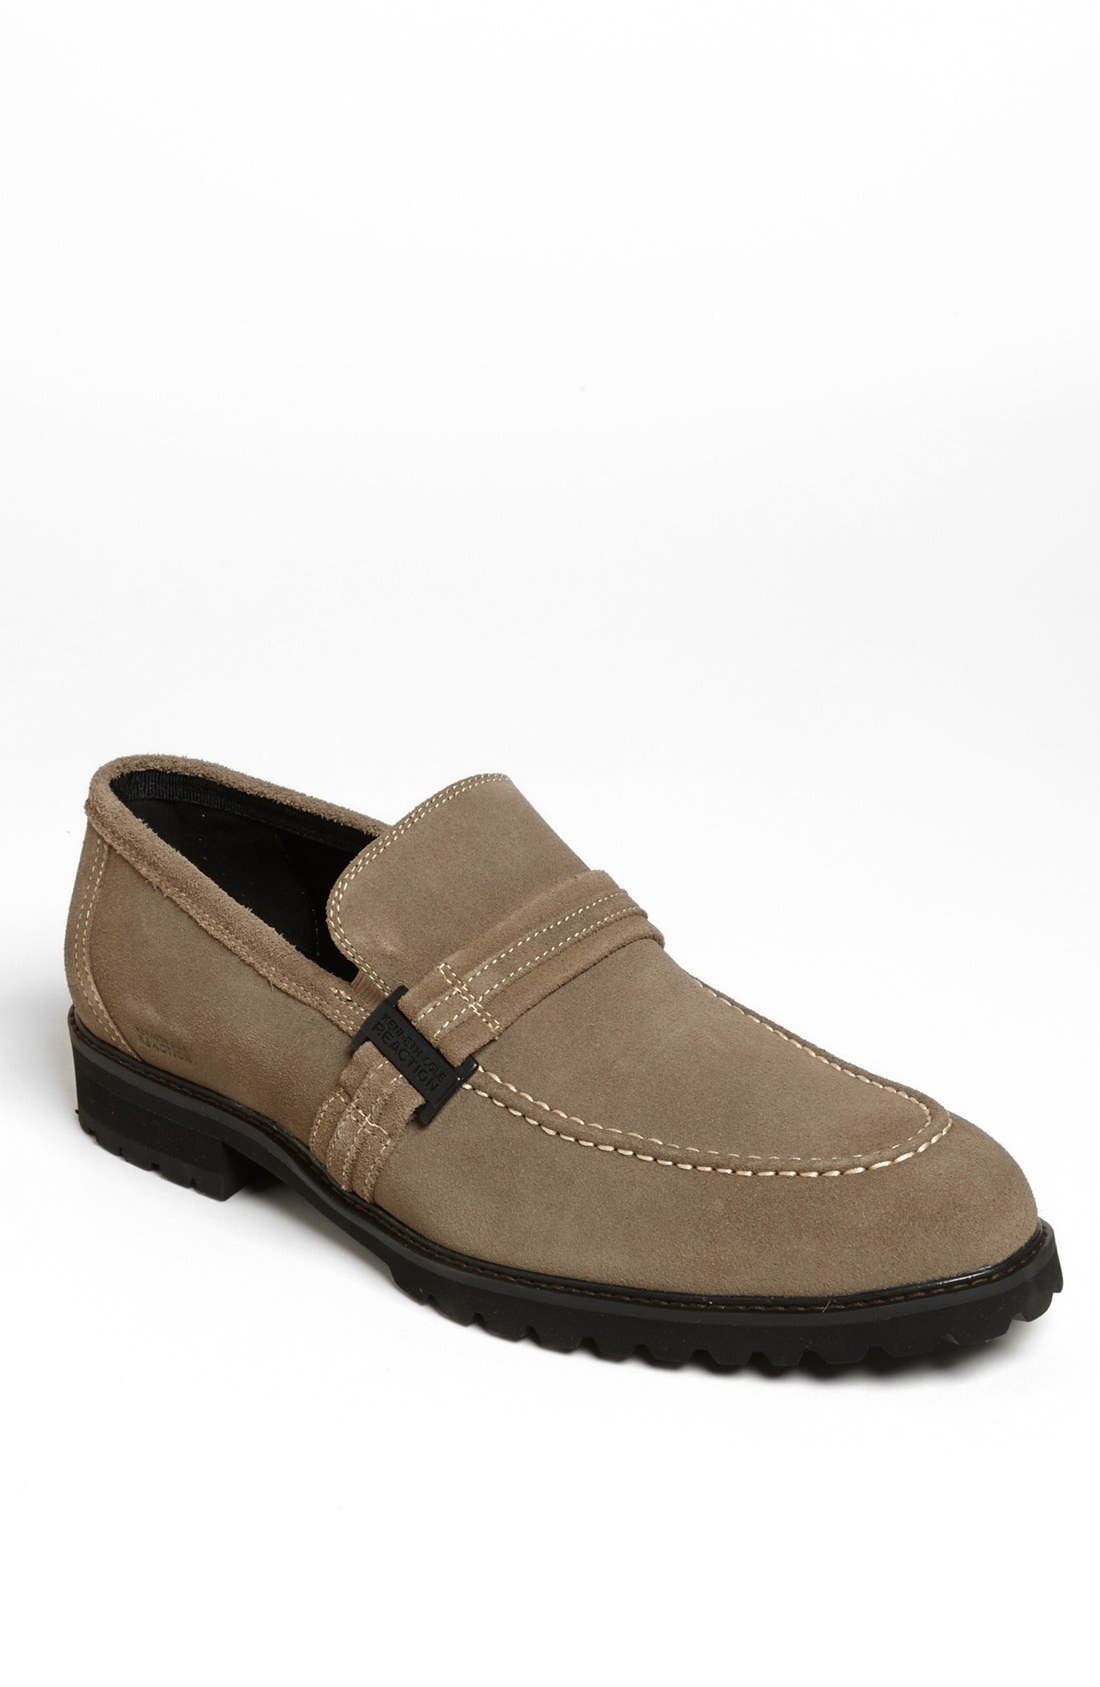 Main Image - Kenneth Cole Reaction 'Now Playing' Loafer